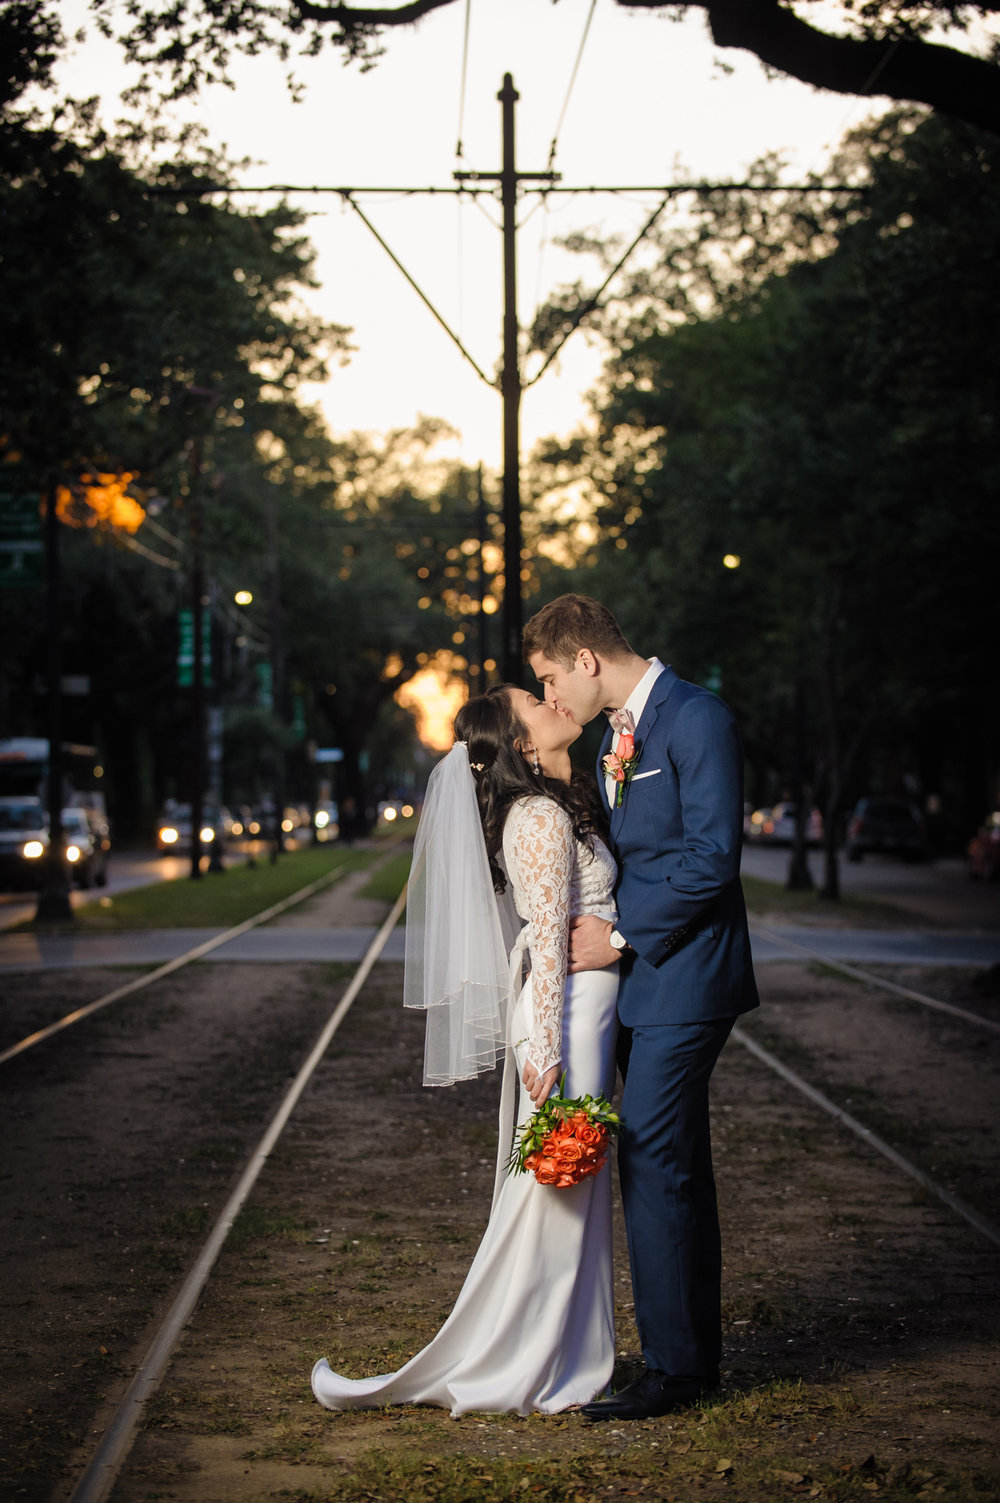 Post-wedding portraits on the St. Charles Avenue street car tracks in front of the Columns Hotel